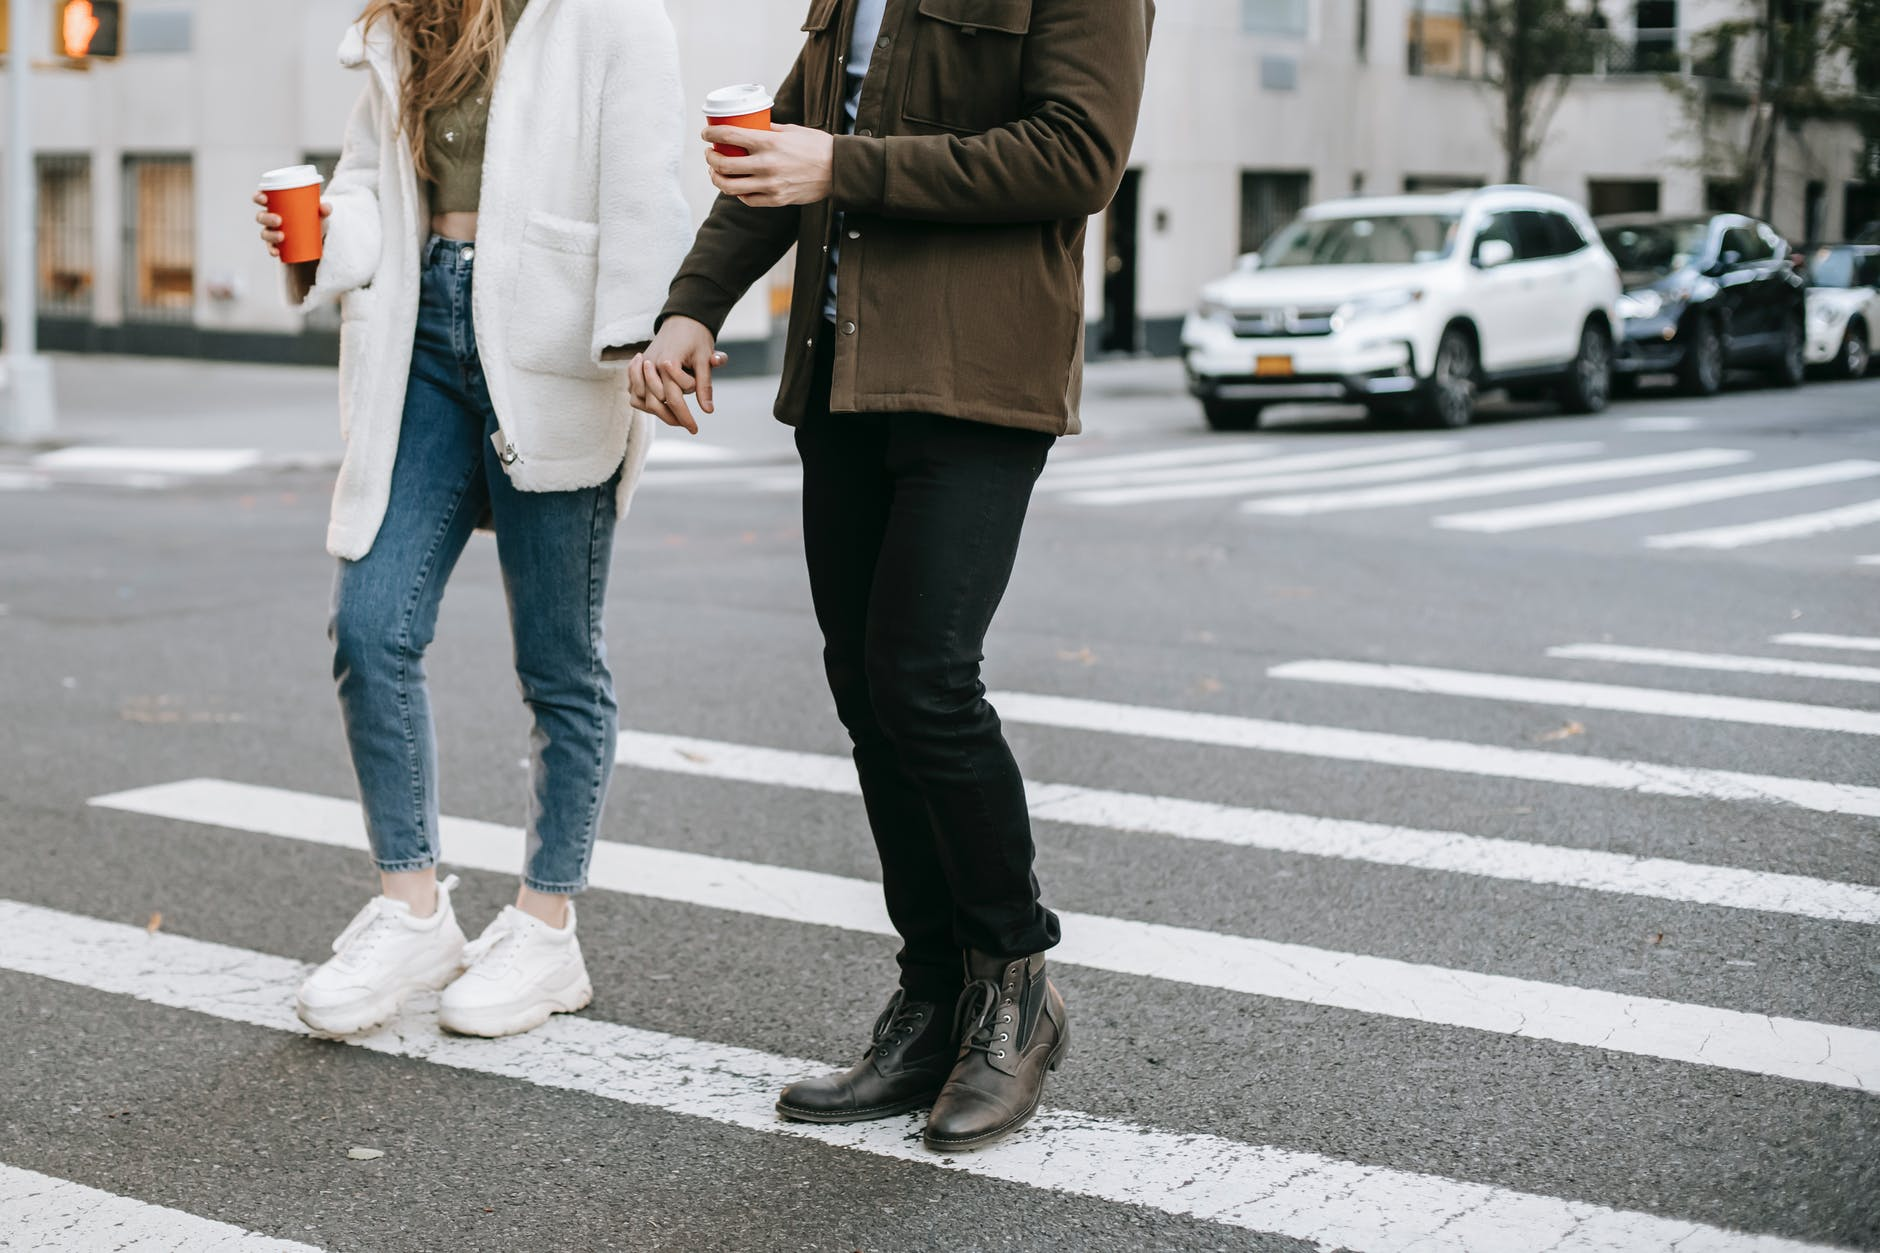 man and woman on crosswalk with paper cups